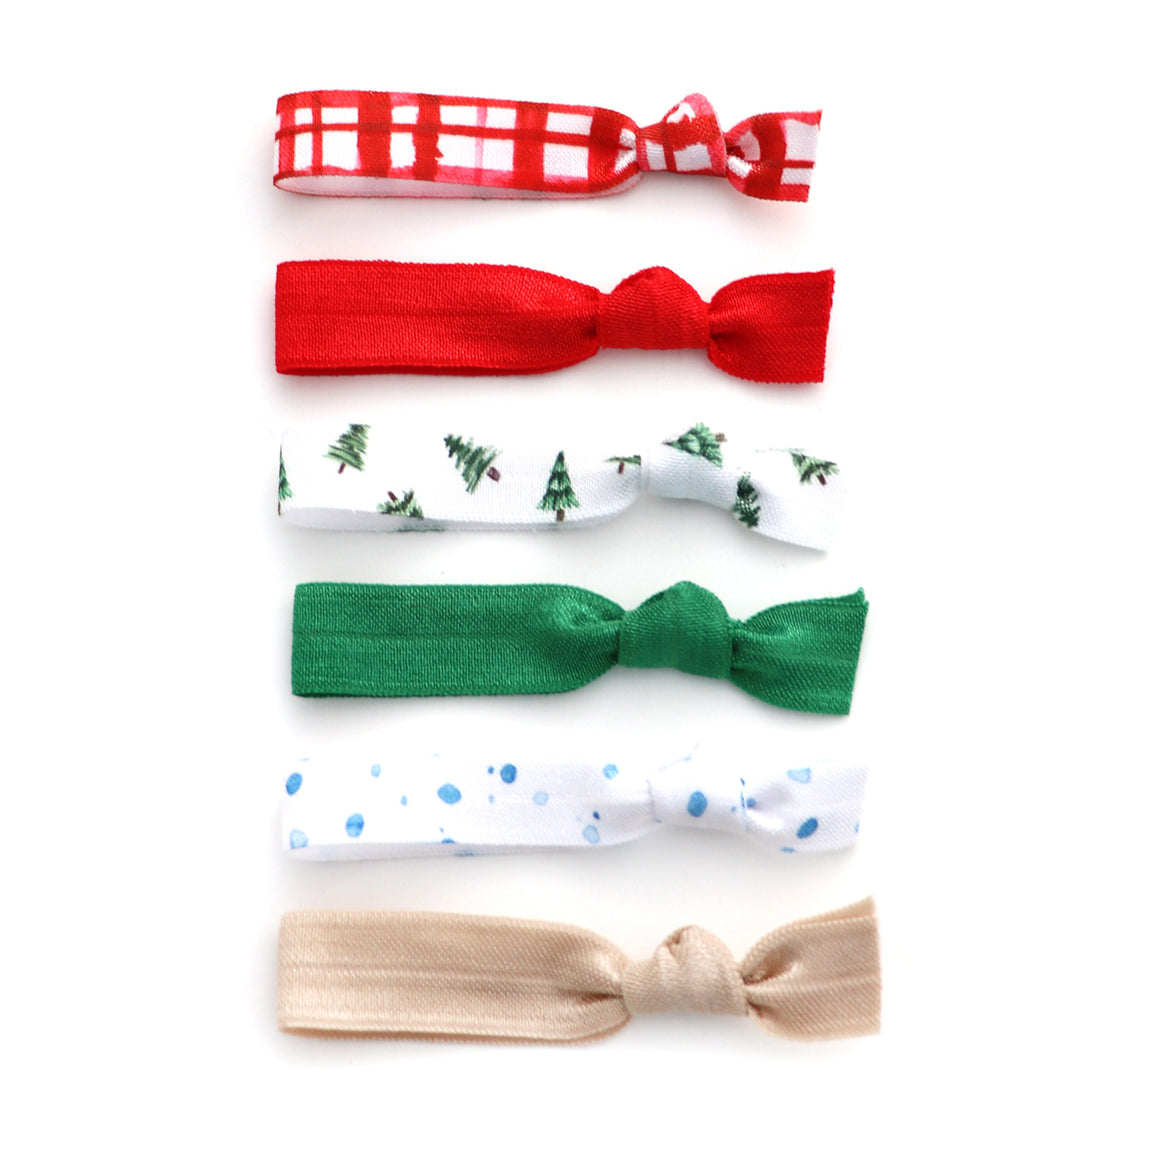 The Festive Hair Tie Package